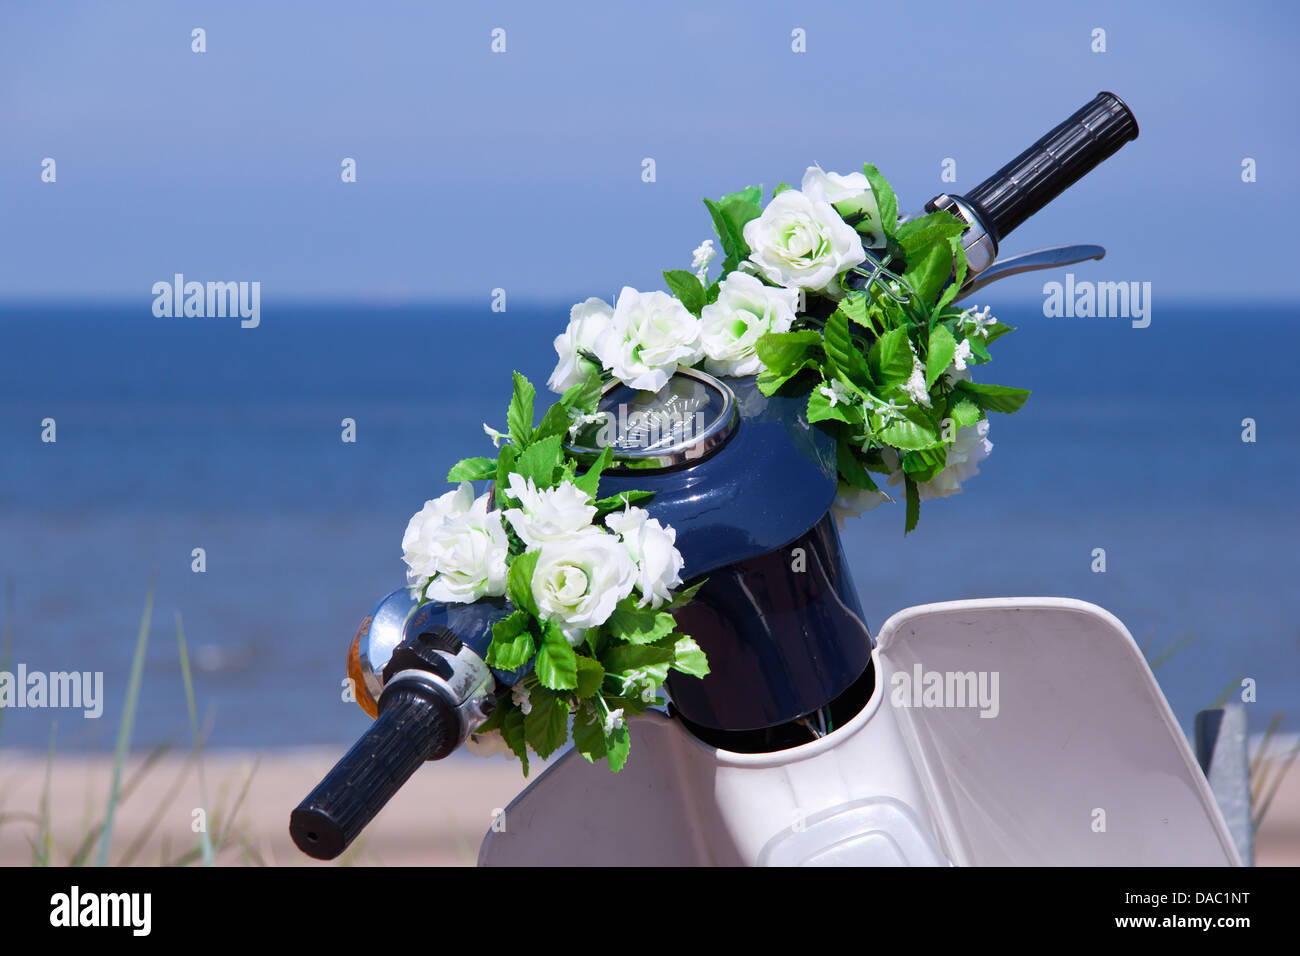 handlebars of a motorcycle adorned with flowers - Stock Image